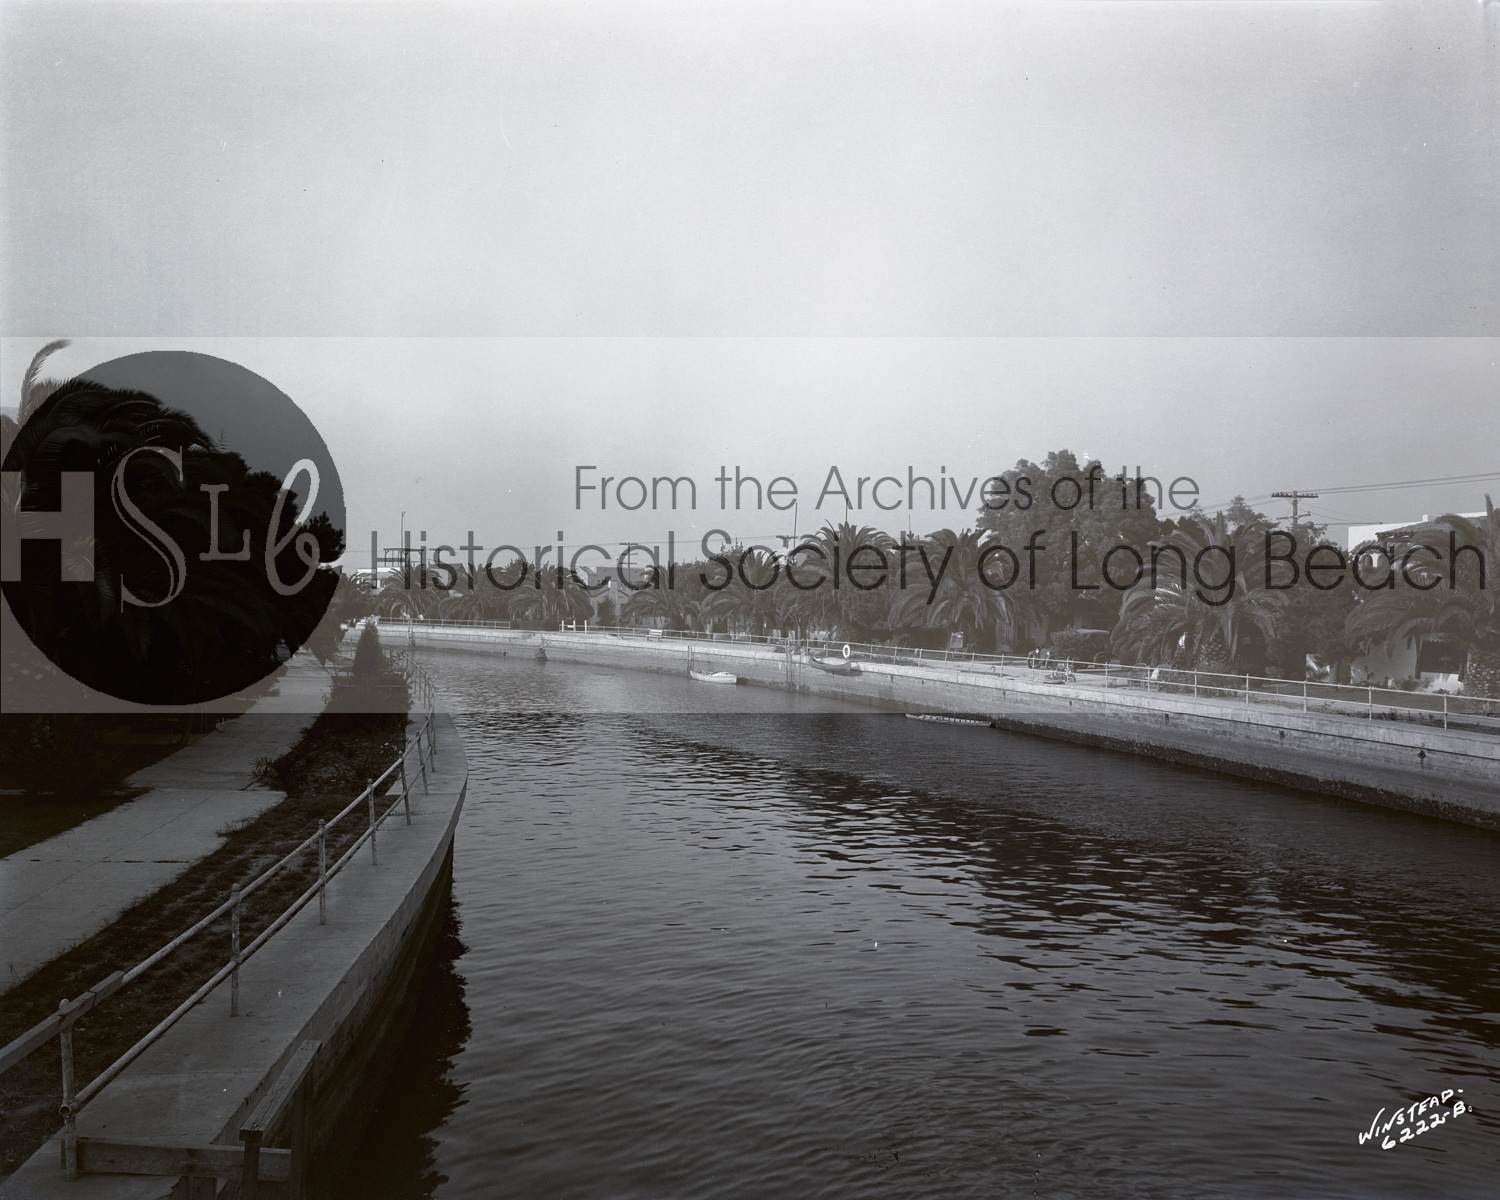 Long beach vintage water canal photograph